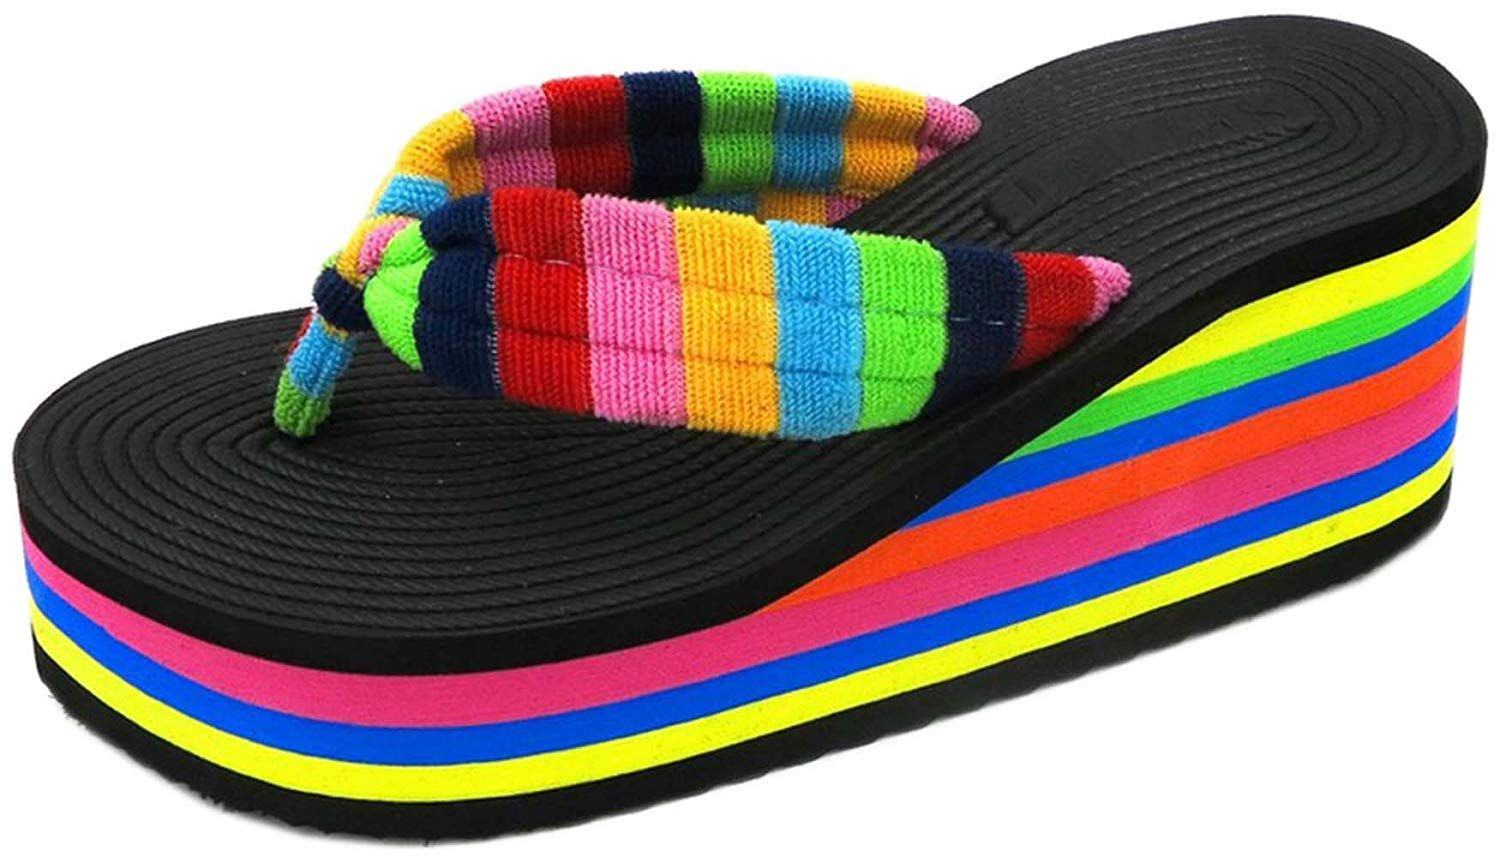 e57c4efae22fc bettyhome Women Lady Houndstooth Stripe High Heels Rainbow Sole Thongs  Casual Wedges Sandals Beach Flip Flops Slippers -- Great to have you for  viewing our ...